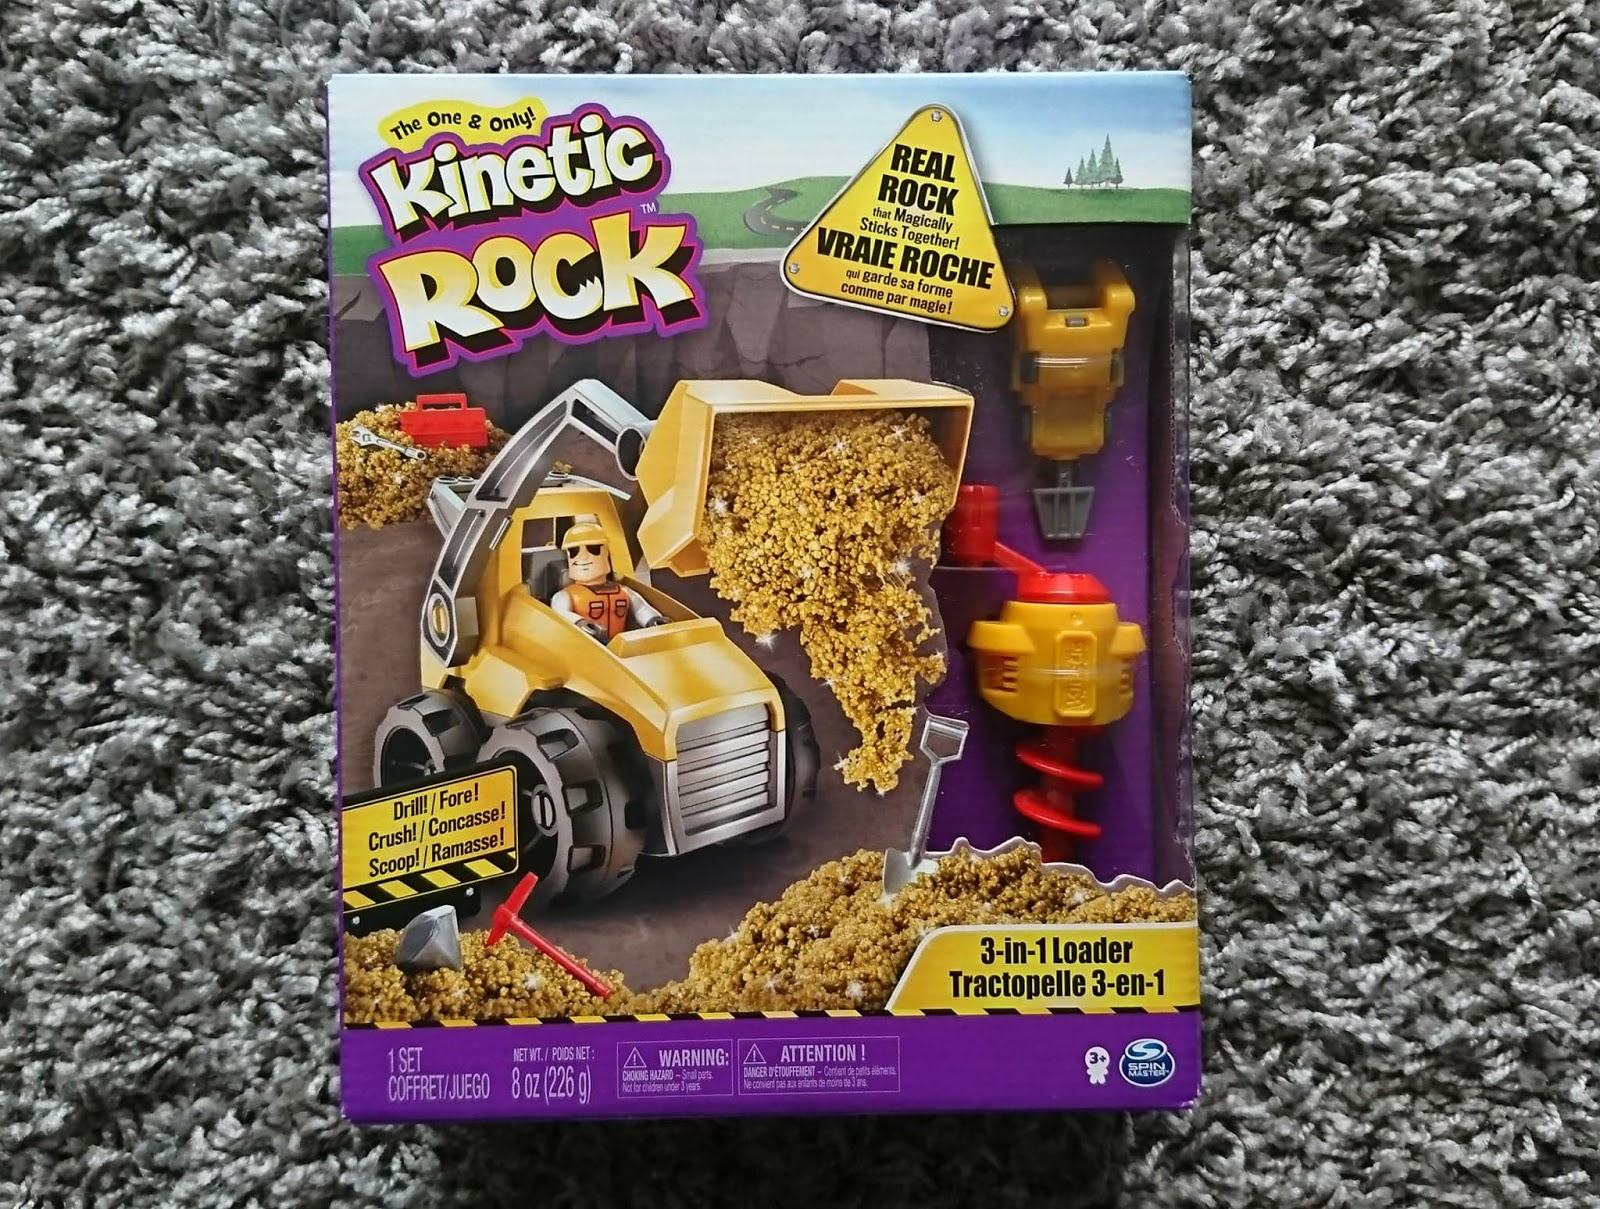 Kinetic Sand Rock 3 in 1 Loader Play Set Digger Drill Crush Scoop Build Mould